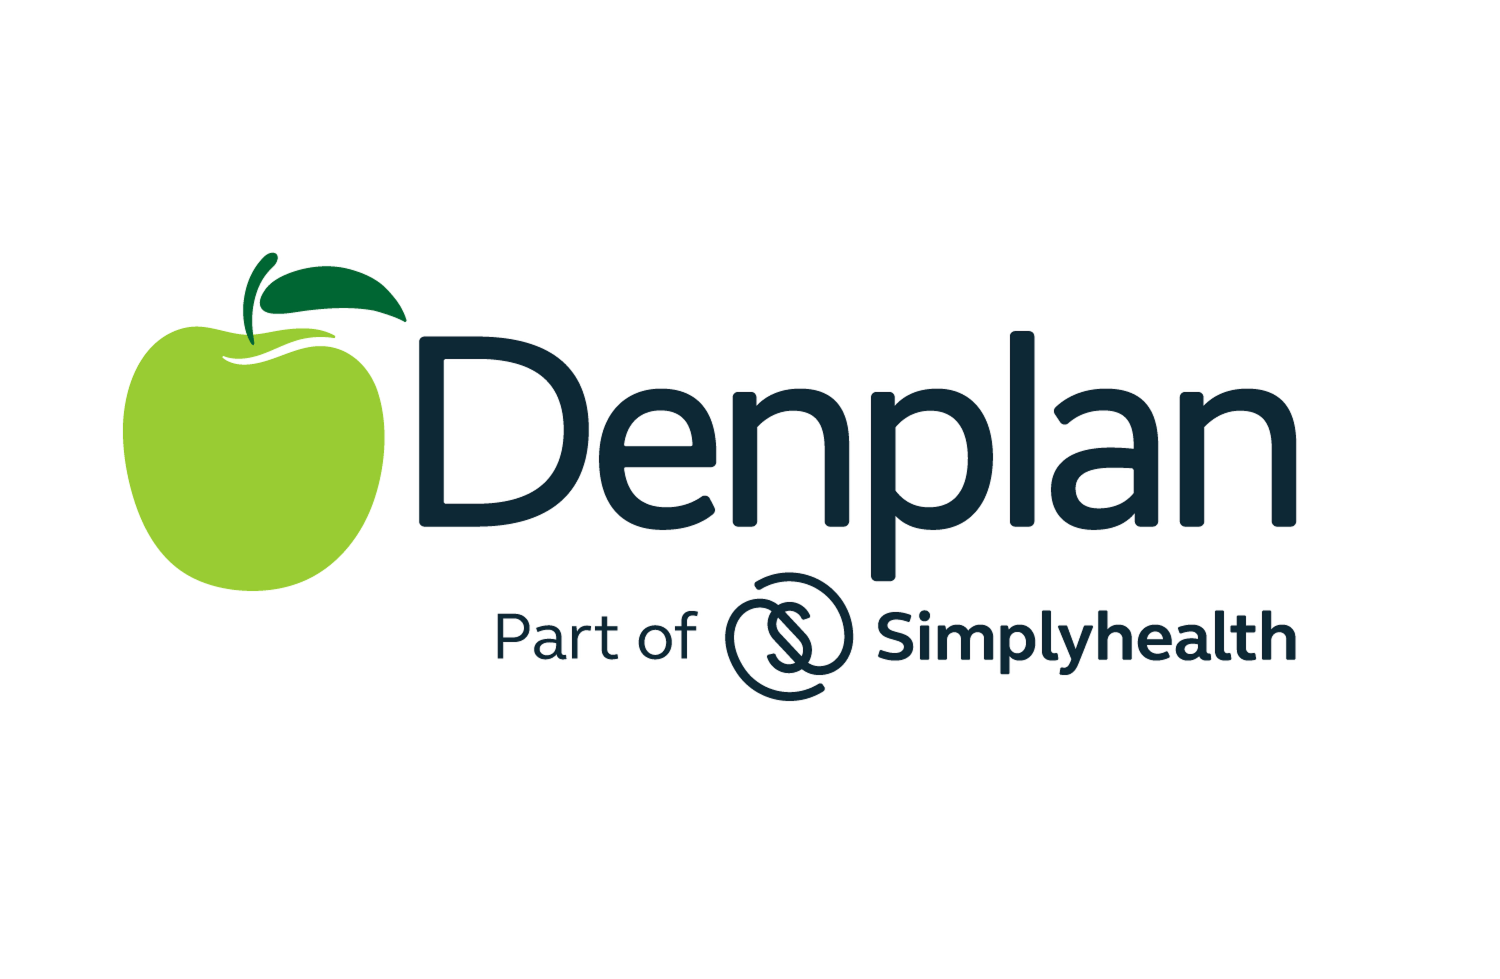 Denplan part of Simplyhealth